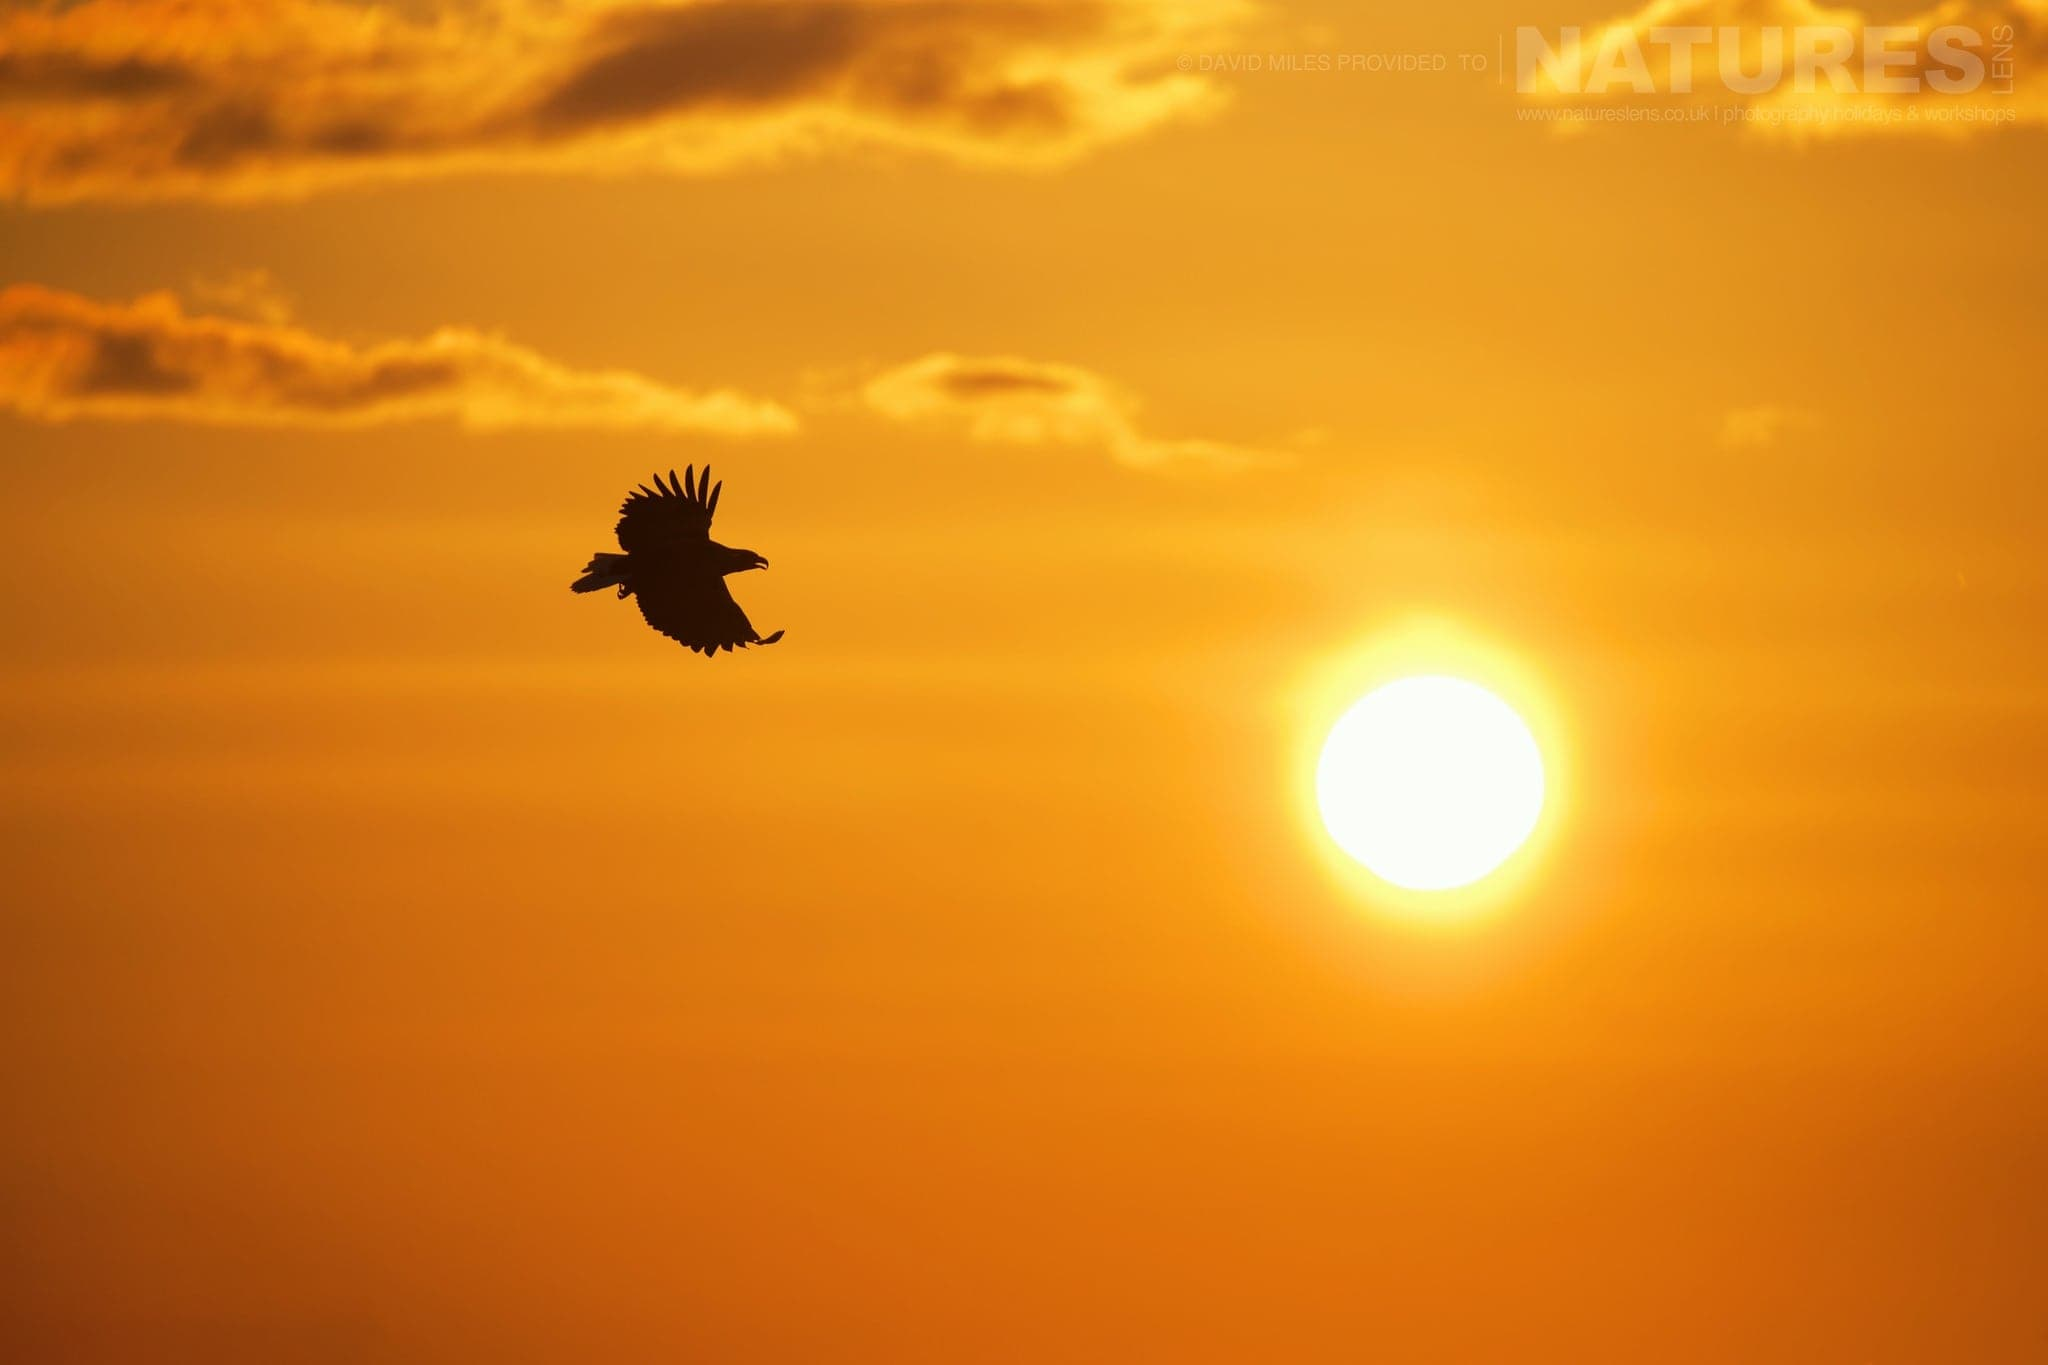 A White Tailed Sea Eagle Flies Across The Orange Sky Of Sunrise   Photographed During The Winter Wildlife Of Japan Photography Holiday